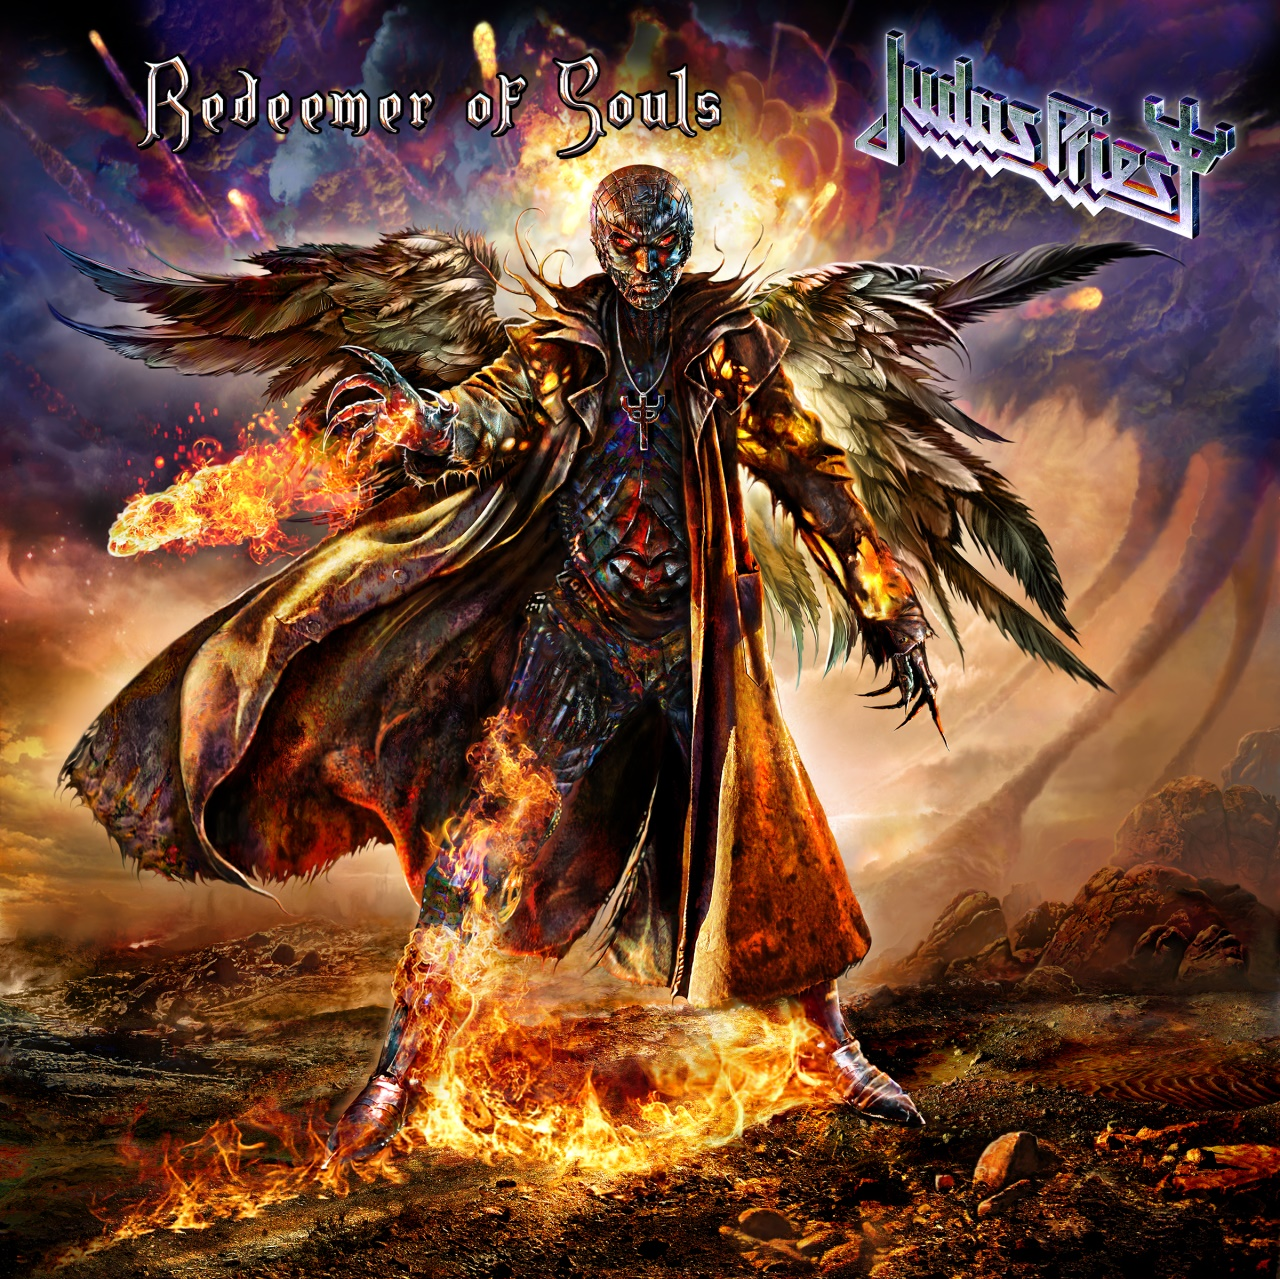 Redeemer-of-souls-Judas-priest